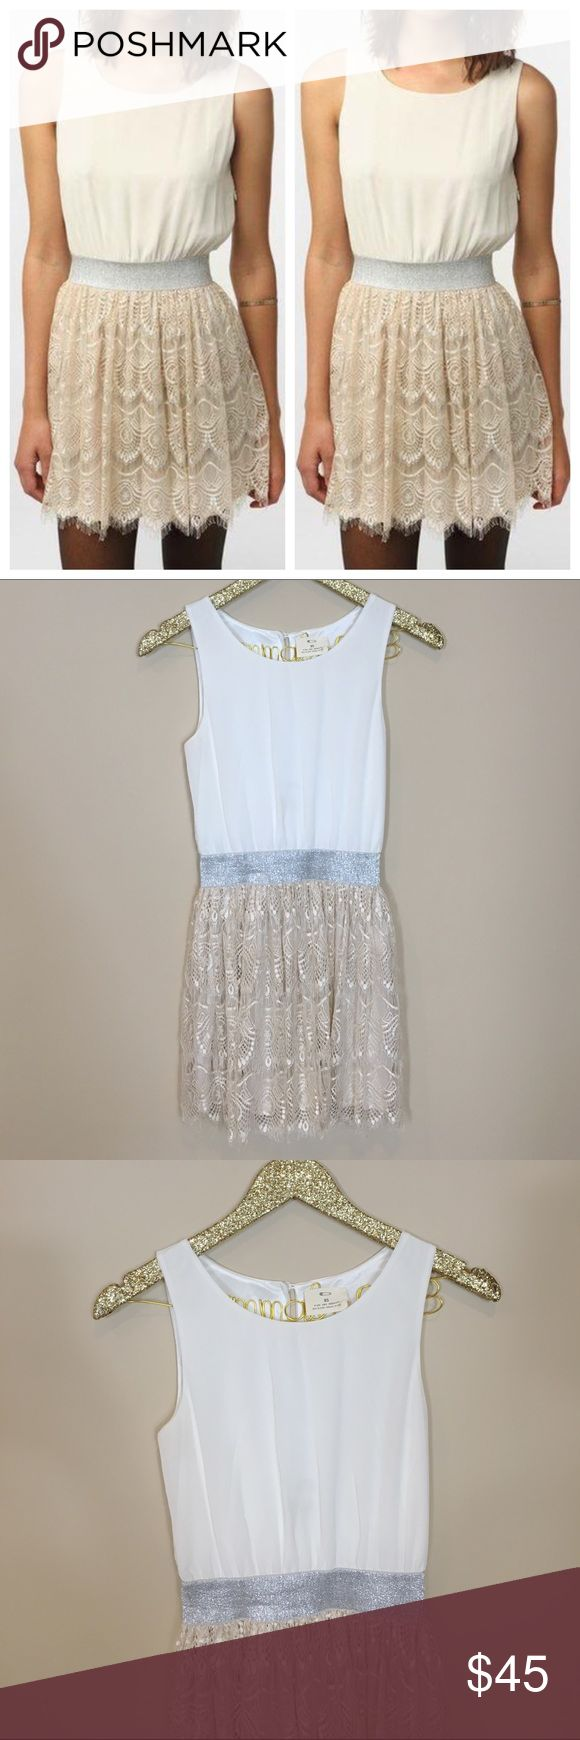 Urban Outfitters Lurex and Lace Dress NWOT - tags removed but never worn! Urban Outfitters Lurex and Lace Dress from Pins and Needles. So adorable! Sleeveless dress - white top with champagne Lace bottom skirt joined together by a flattering silver band at the waist. Size XS. No modeling/trades. Urban Outfitters Dresses